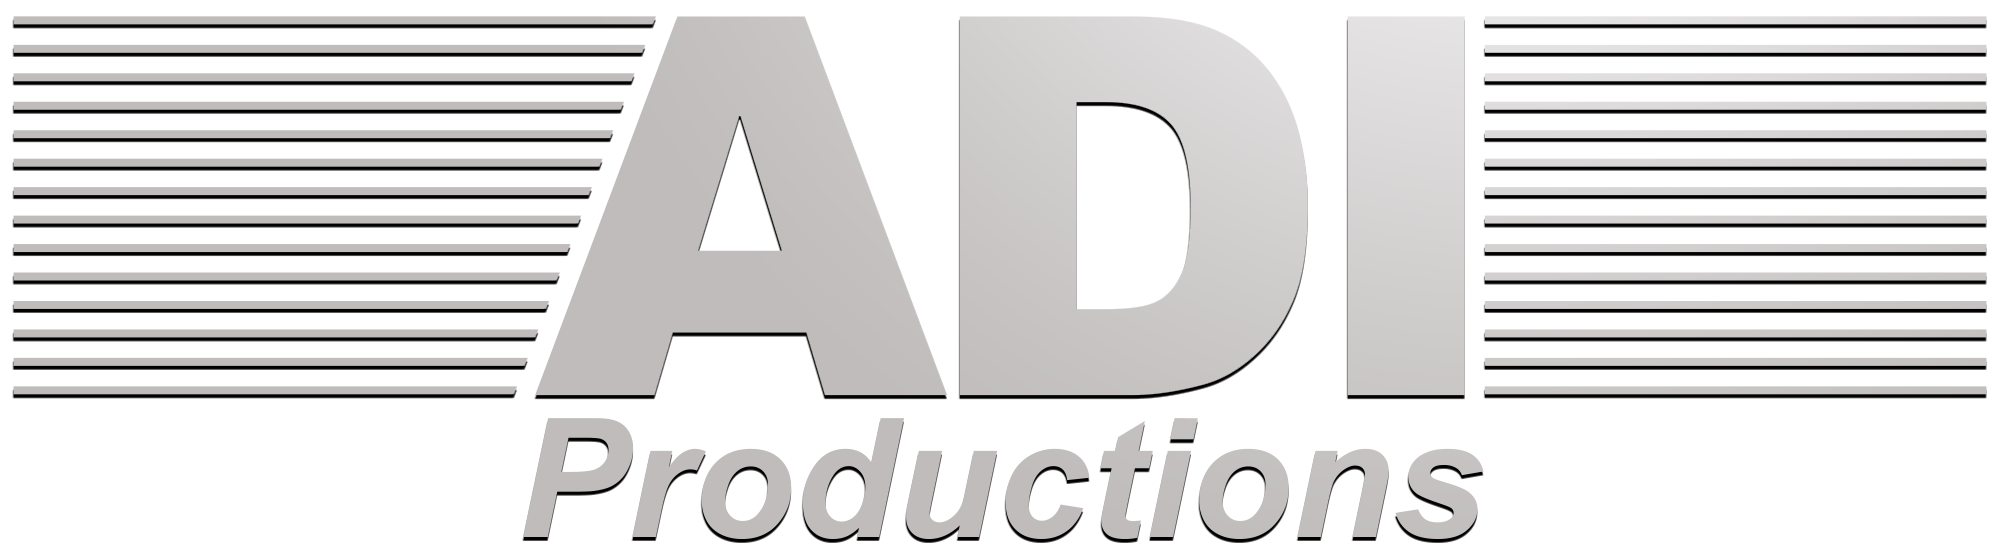 ADI Productions, Inc.